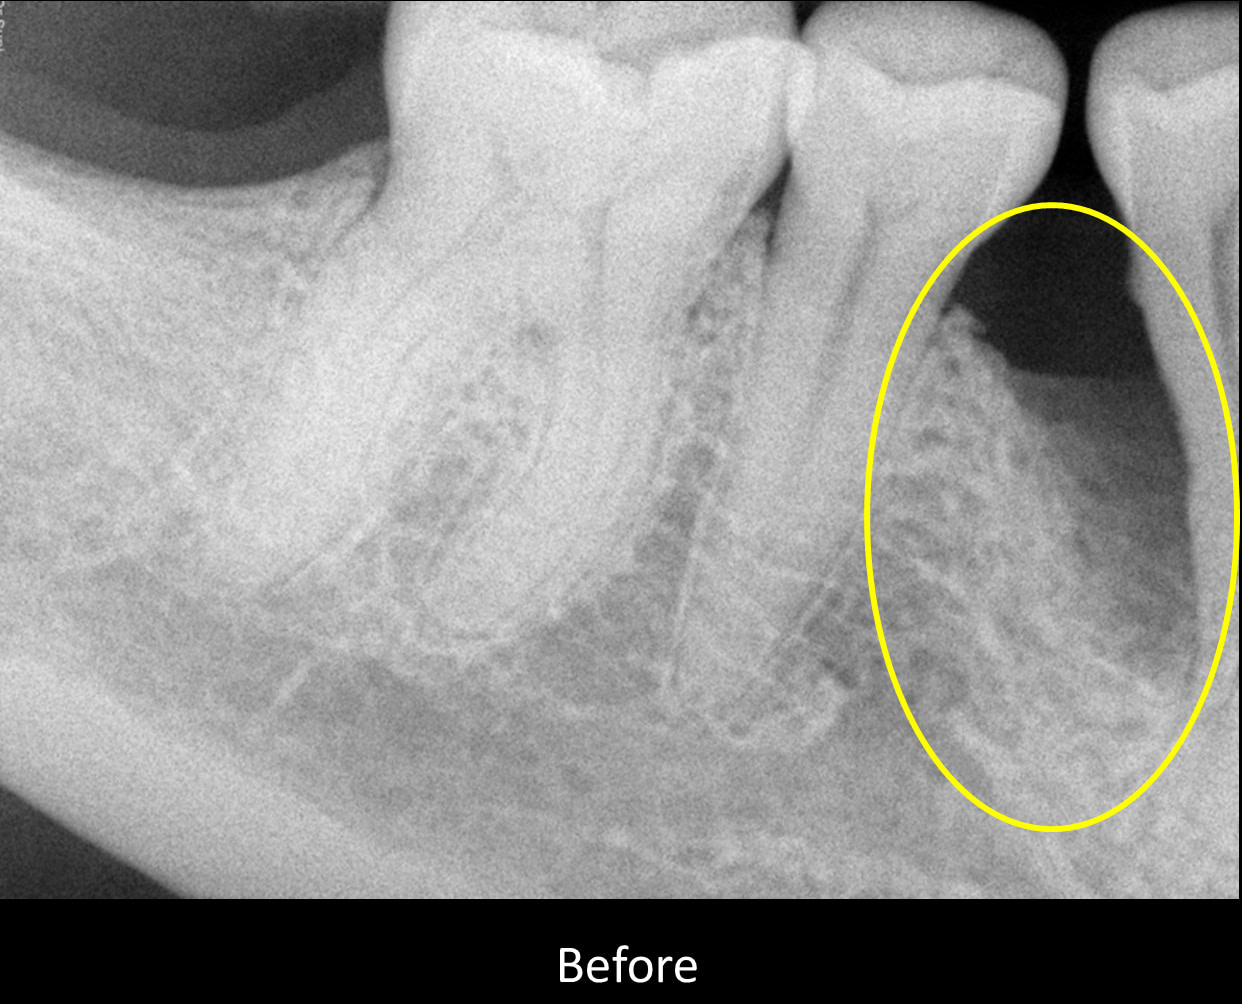 x-ray view of a periodontal pocket before periodontal treatment and bone grafting